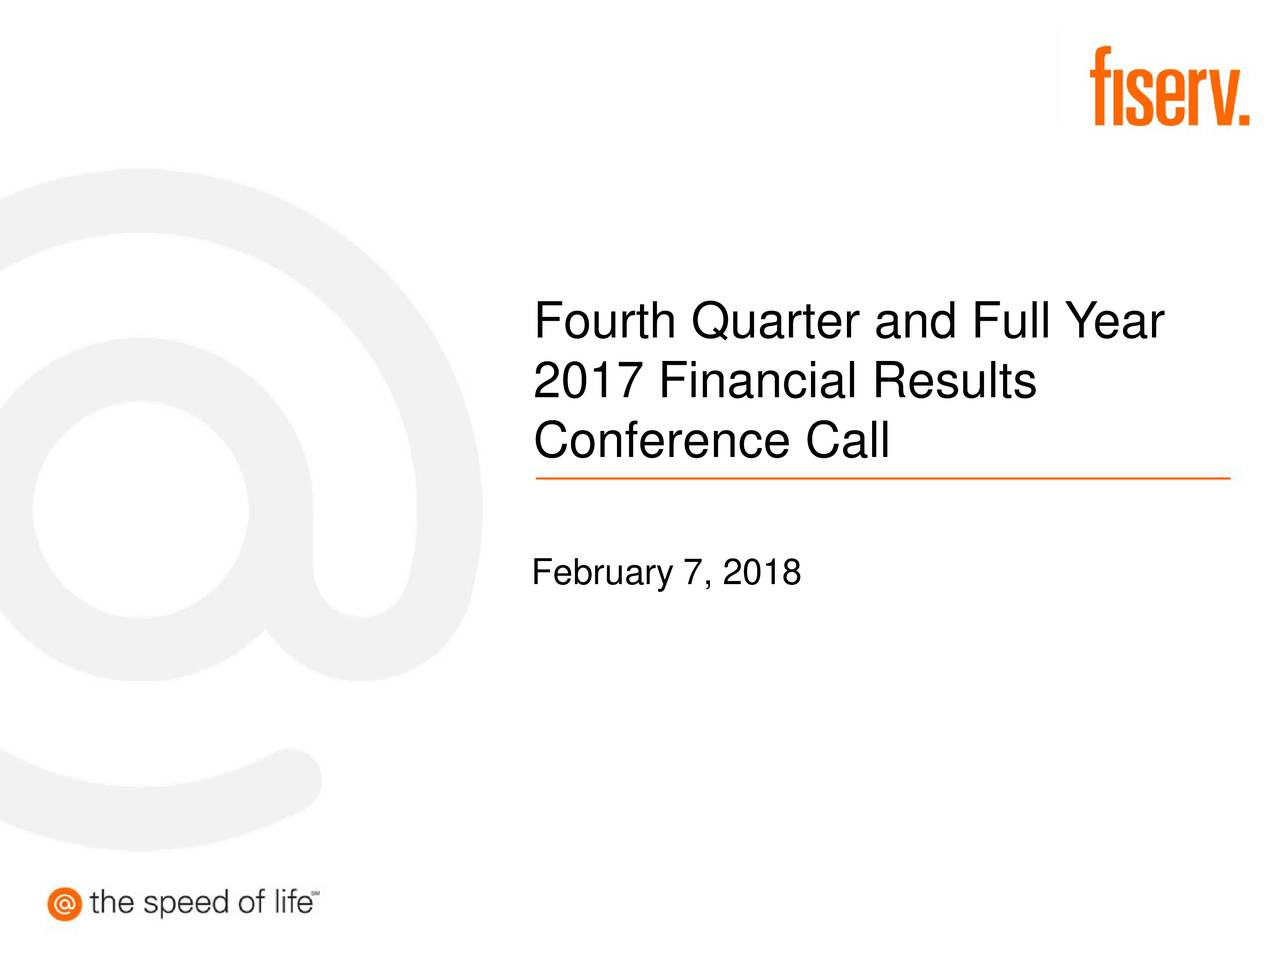 2017 Financial Results Conference Call February 7, 2018